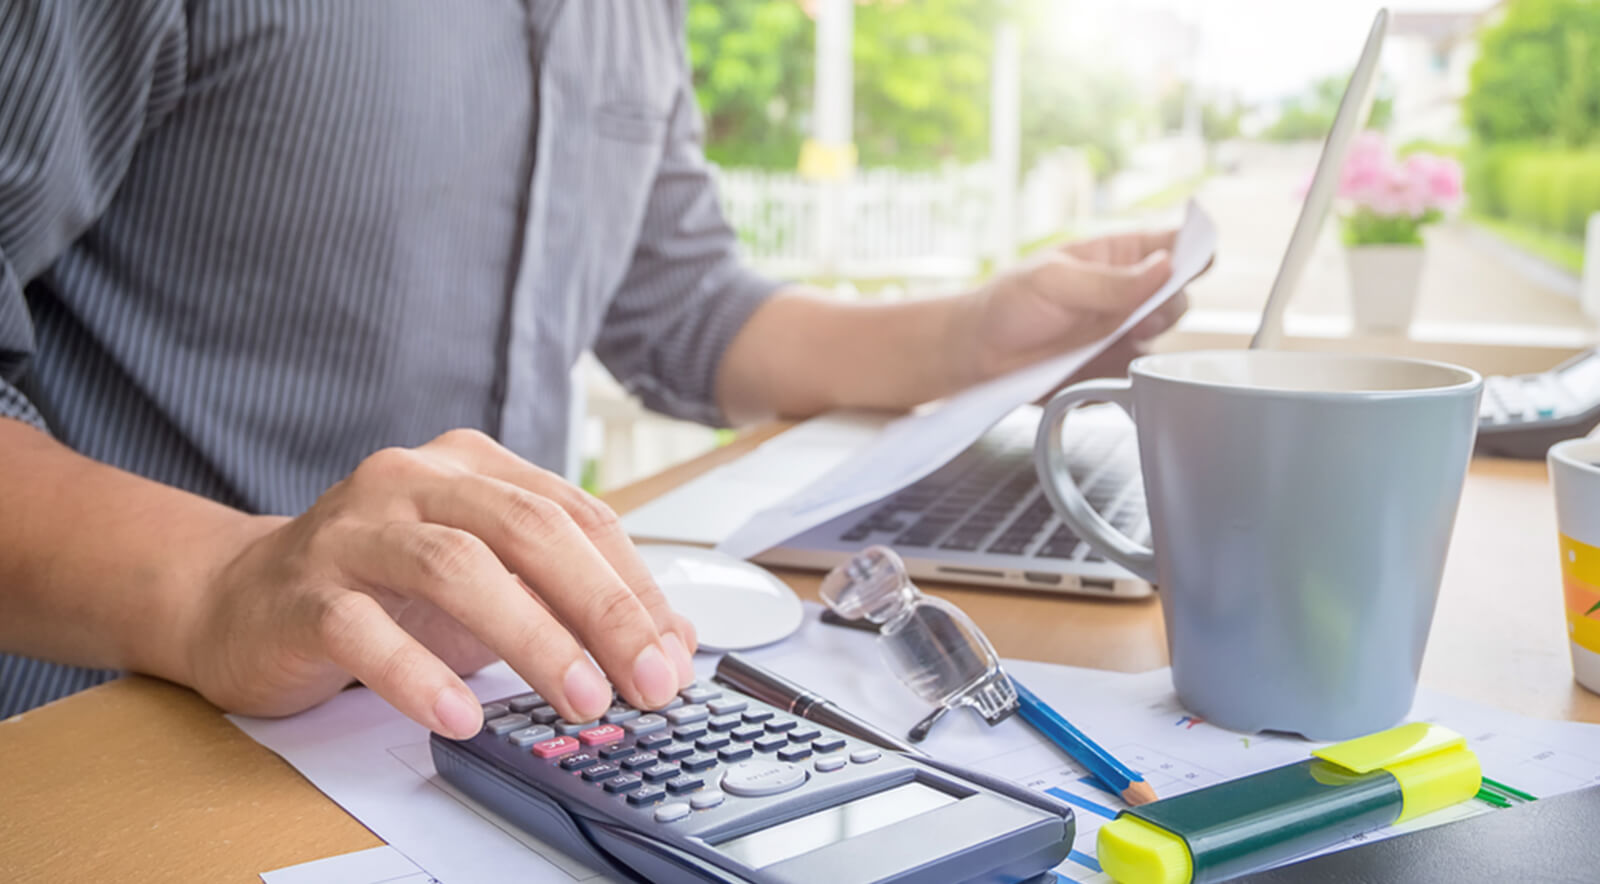 Calculating the cost of printing